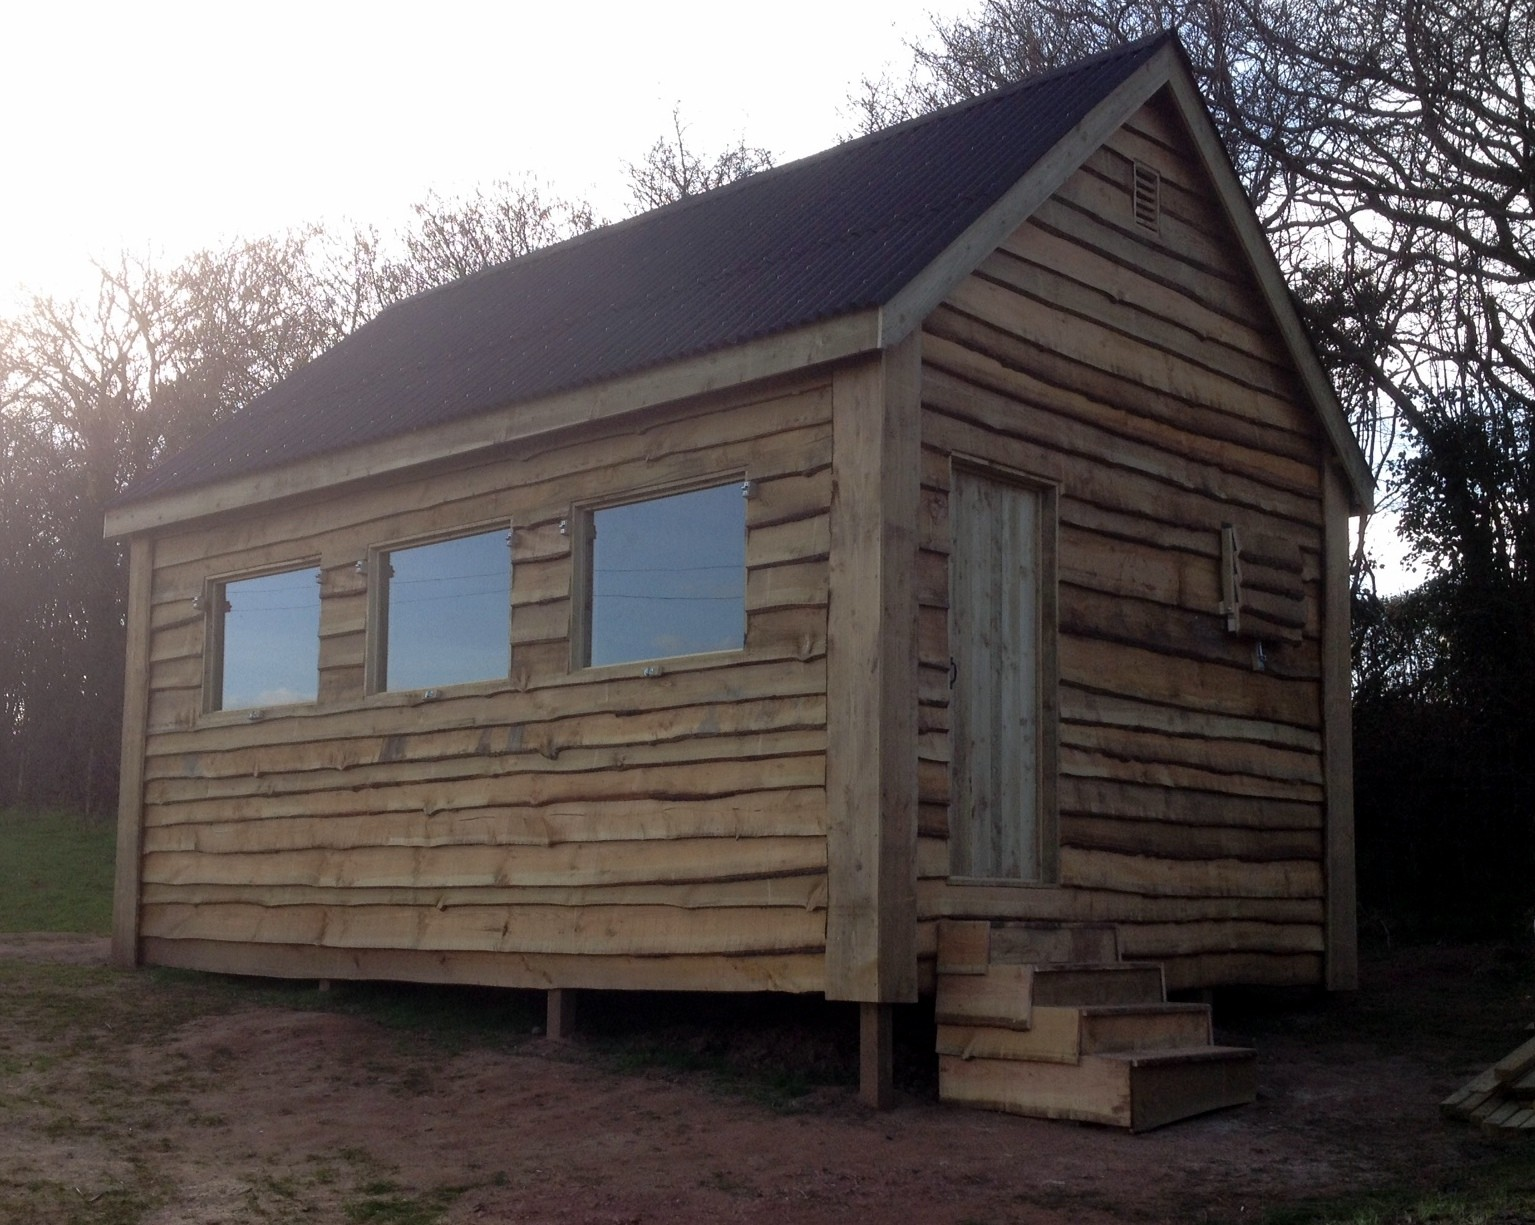 Waney Edge Wood Cabin The Wooden Workshop Oakford Devon